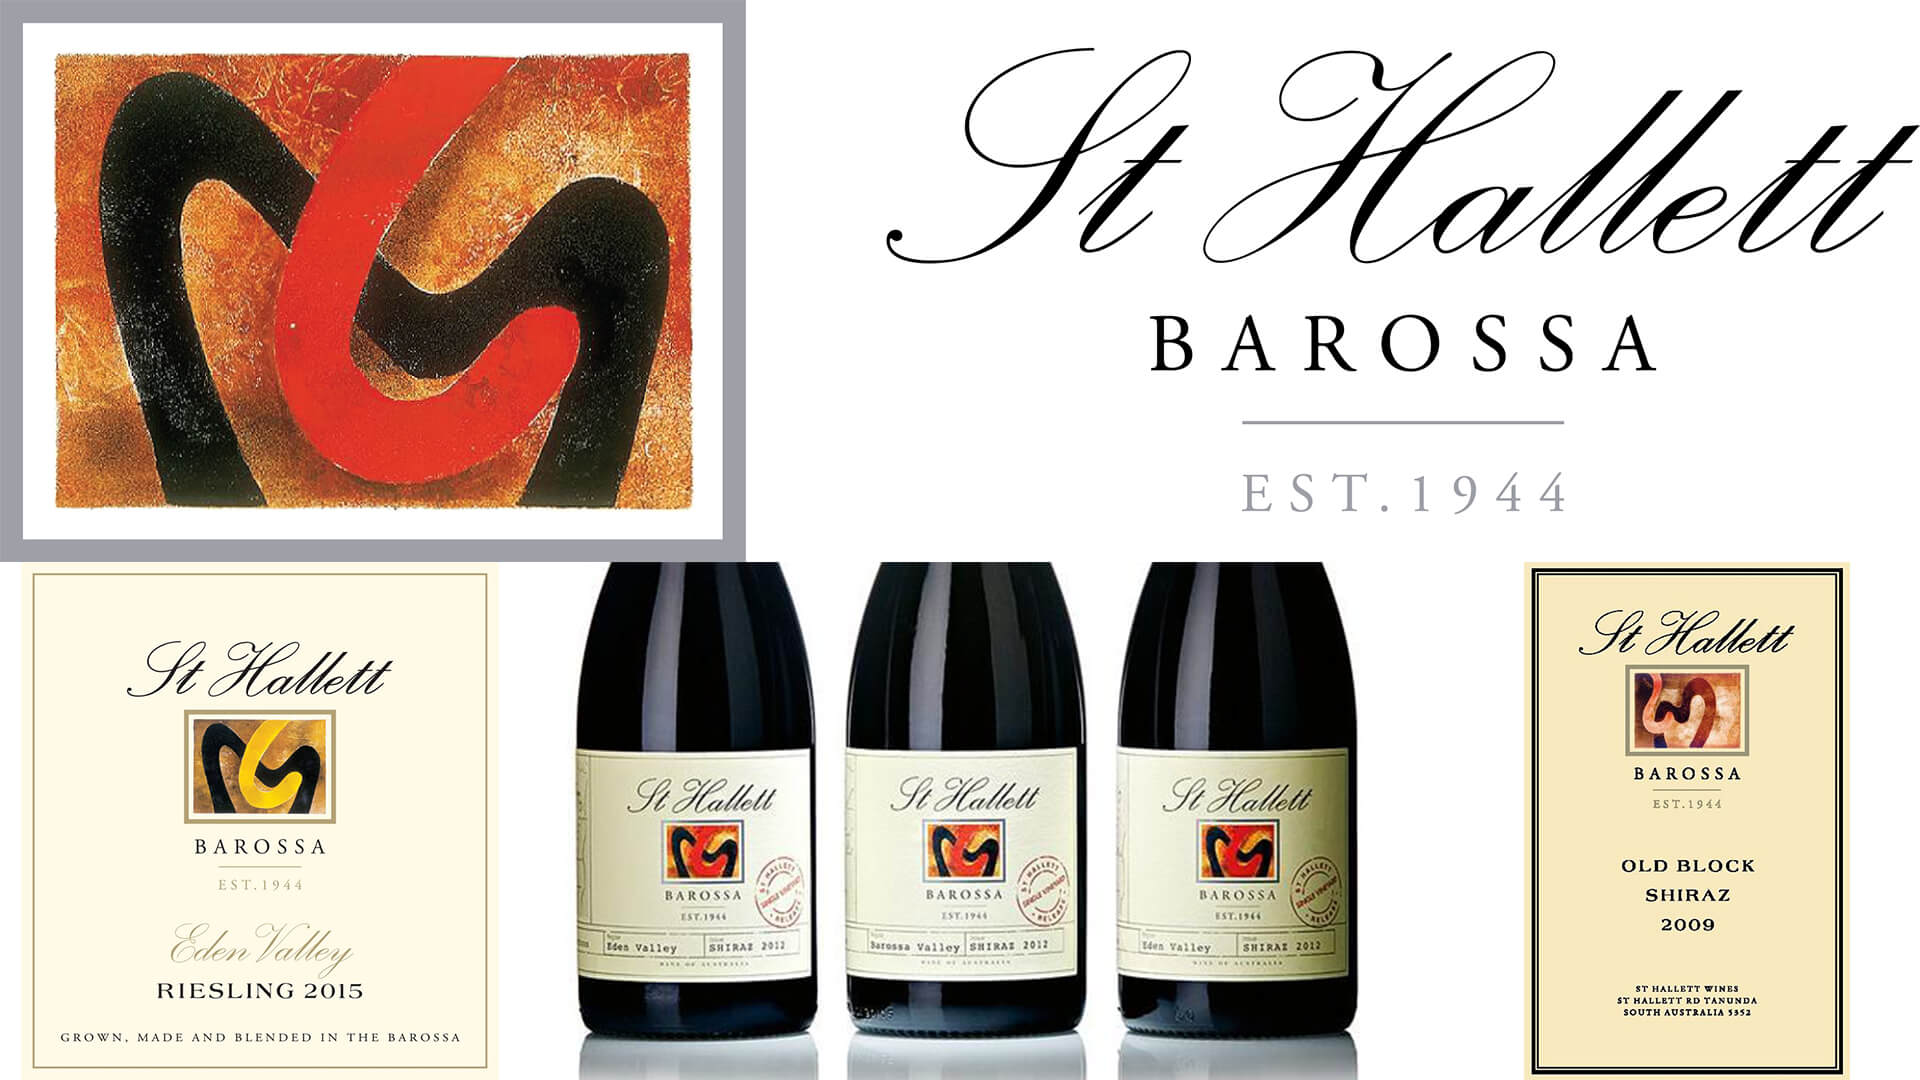 St Hallet of Barossa Sunday Wine Lunch :  New vintage launch of the legendary Old Block Shiraz